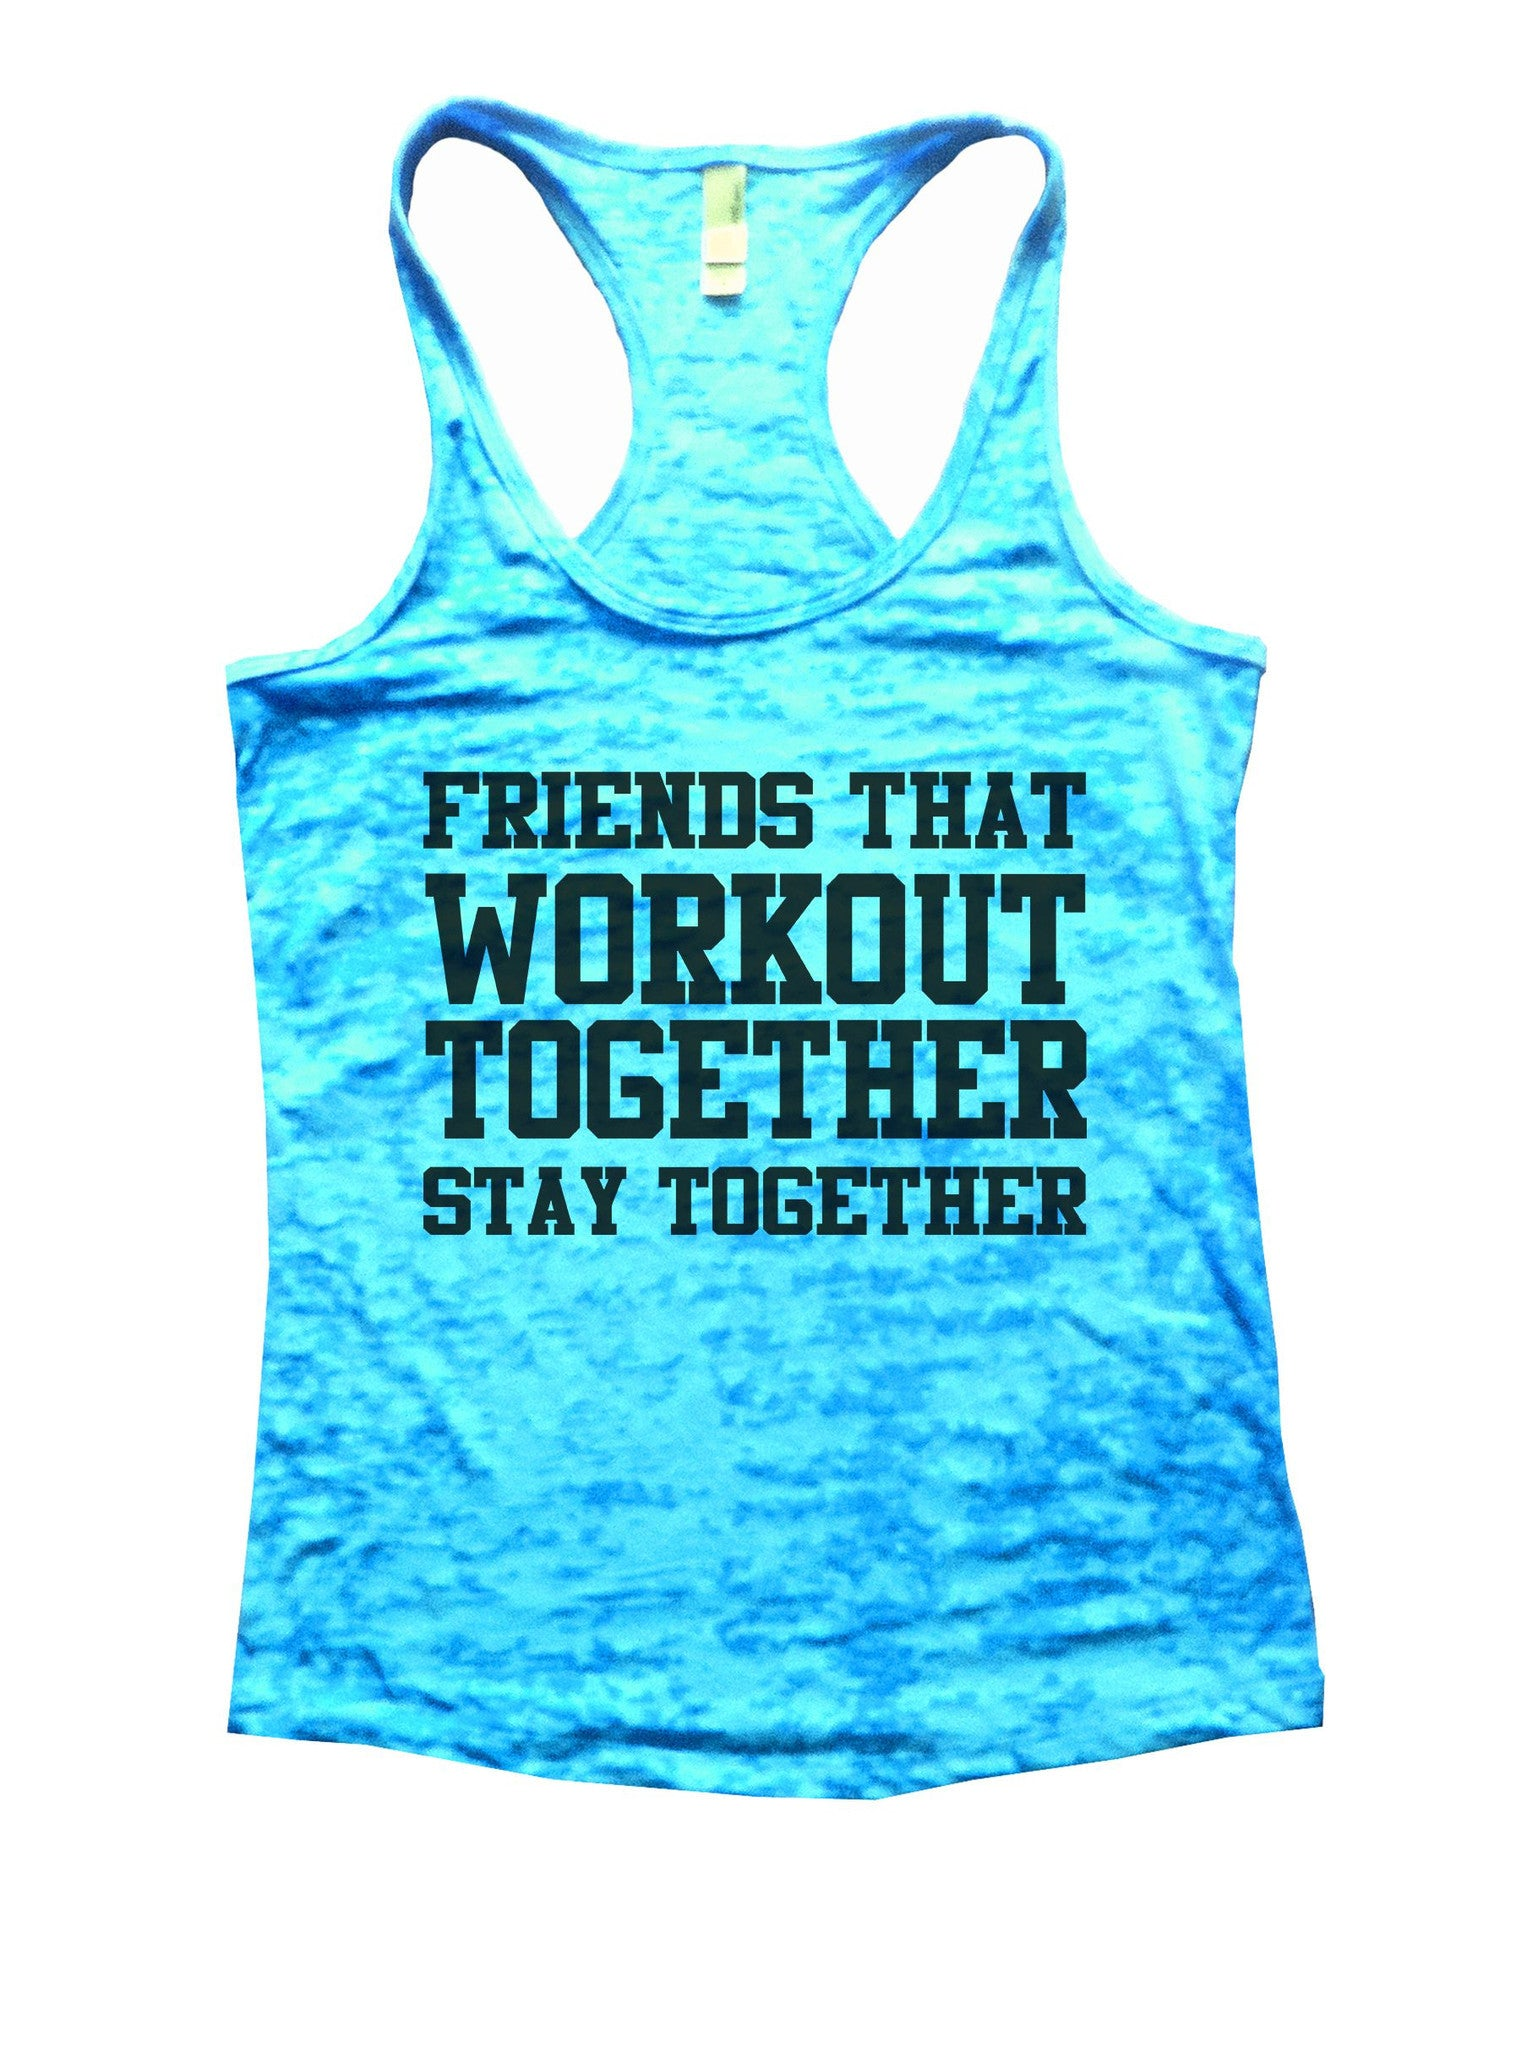 Friends That Workout Together Stay Together Burnout Tank Top By BurnoutTankTops.com - 847 - Funny Shirts Tank Tops Burnouts and Triblends  - 4